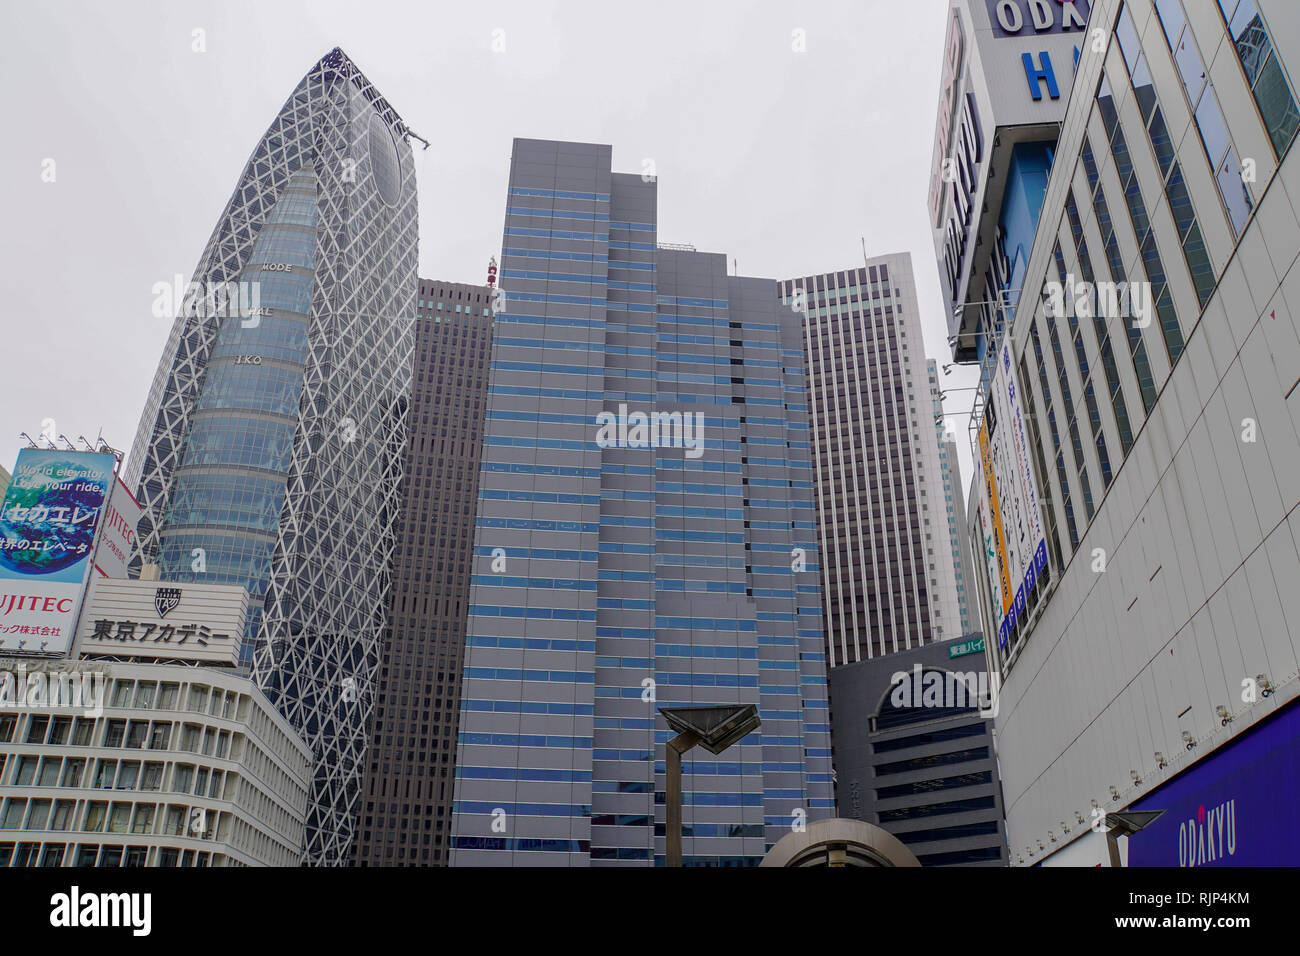 Urban cityscape in central Tokyo, Japan Photo Stock